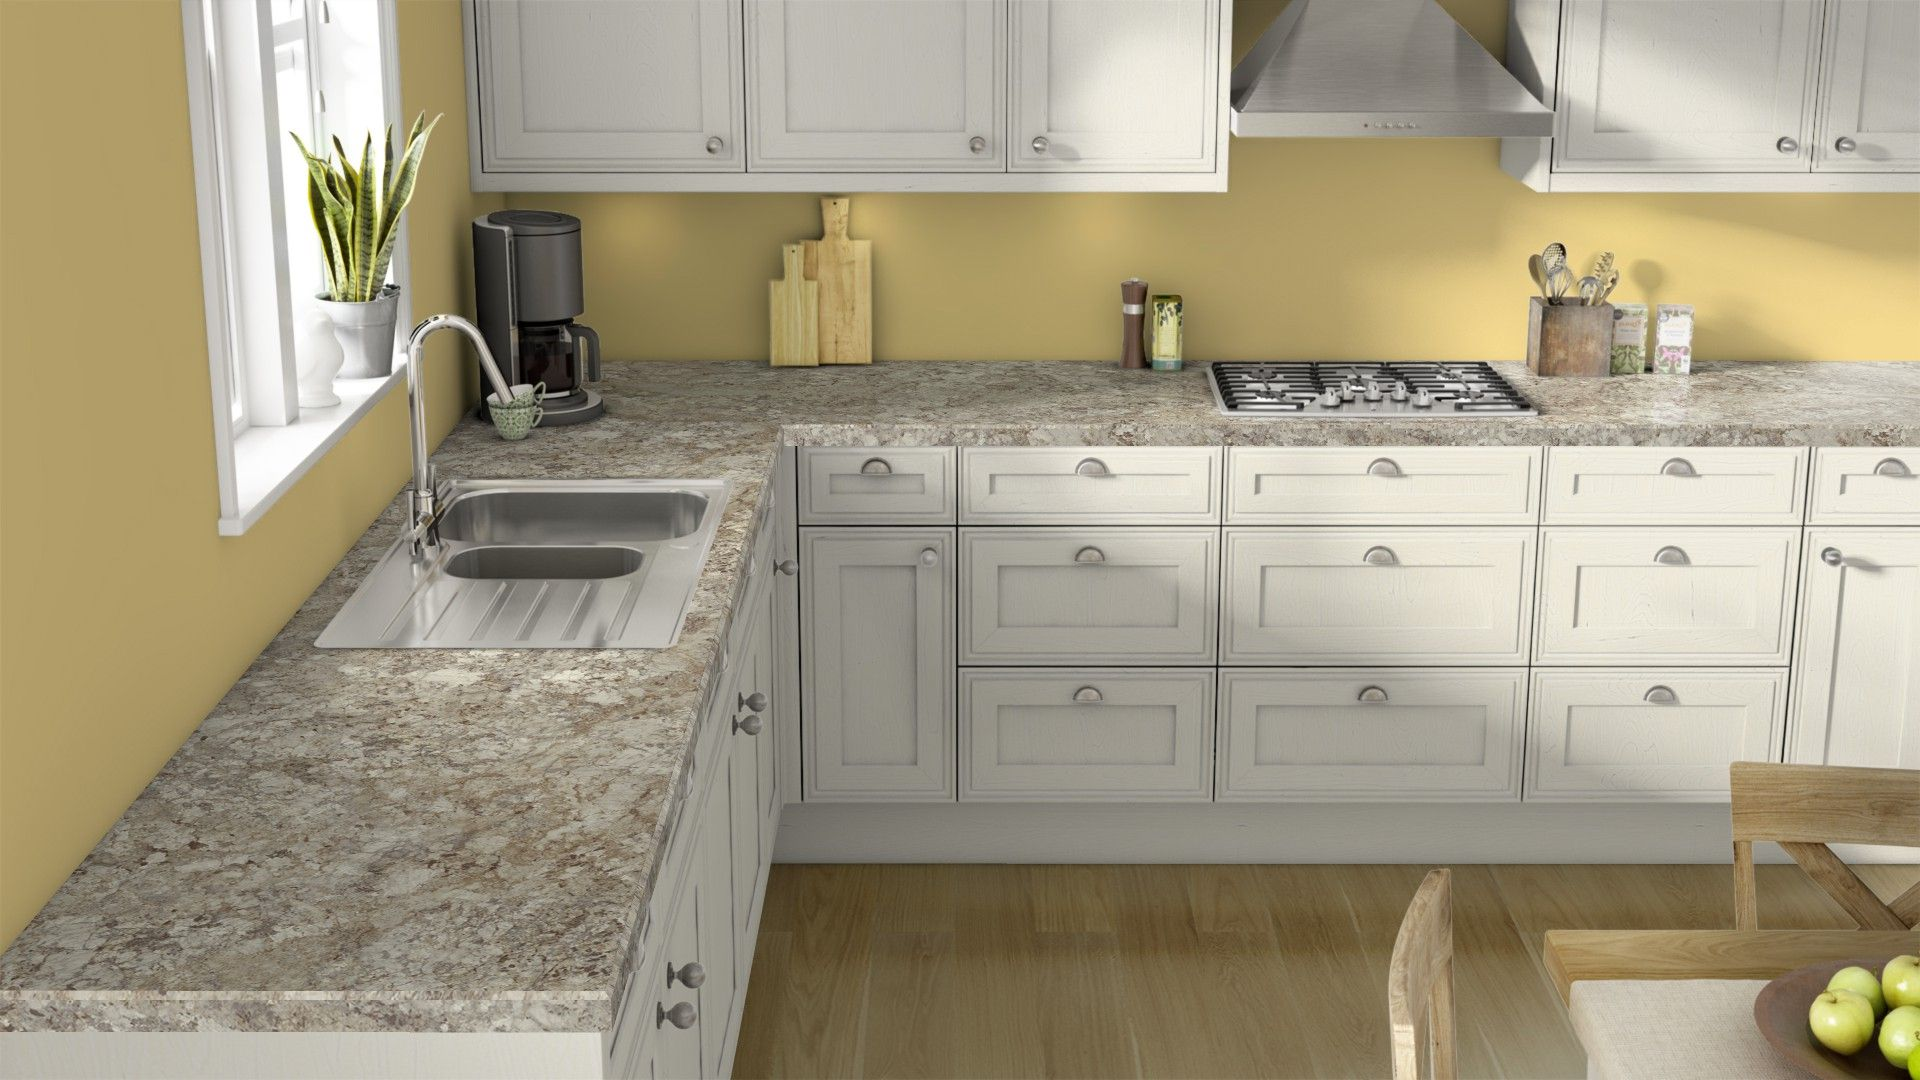 Get Inspired For Your Kitchen Renovation With Wilsonarts Free Design